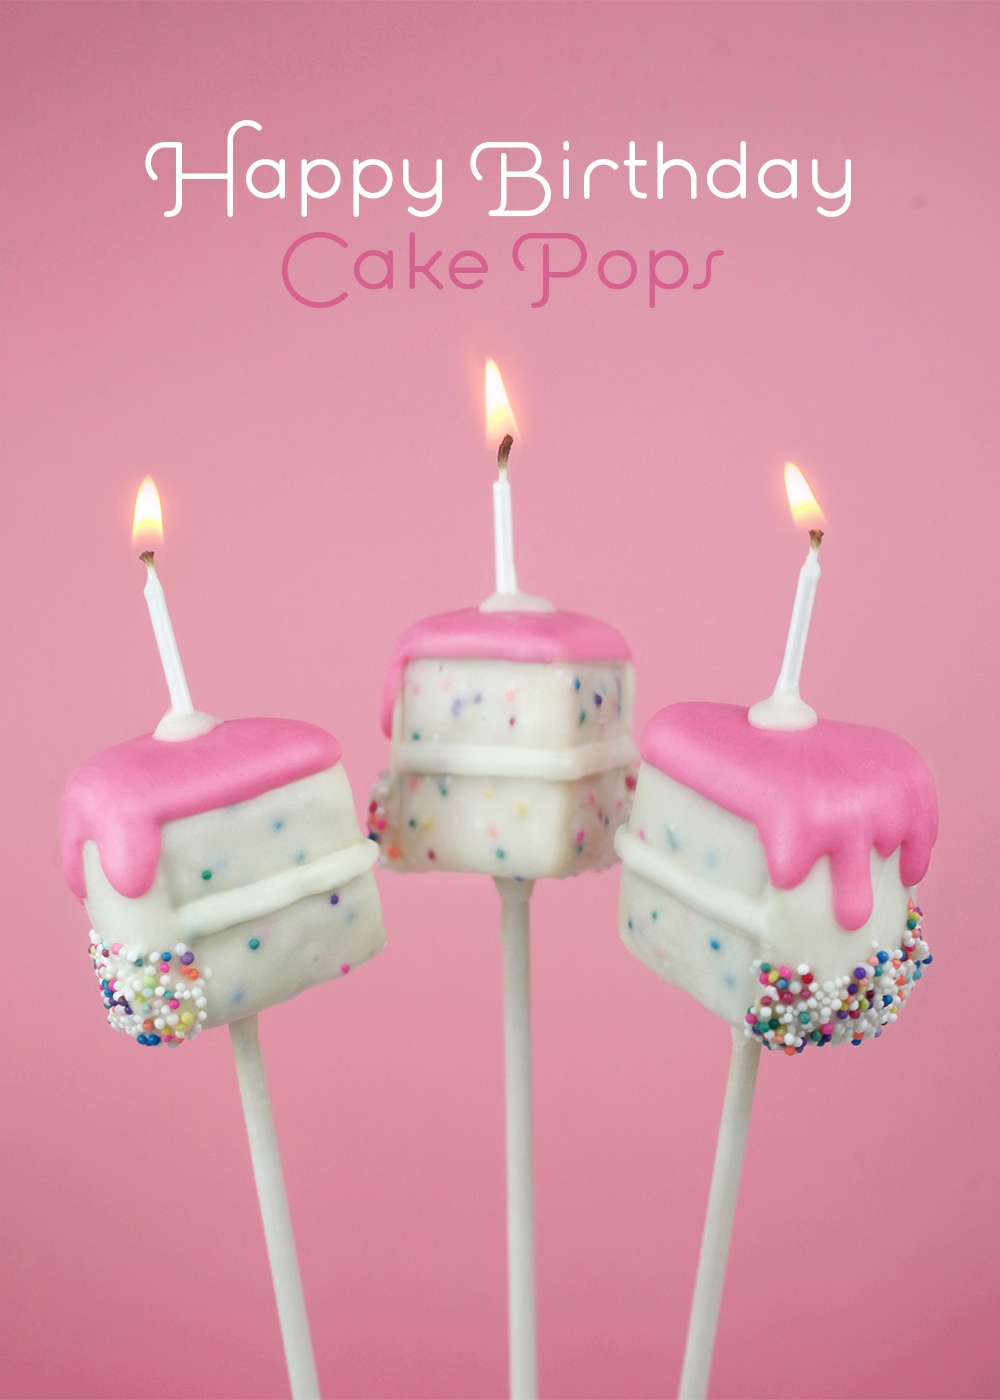 Birthday Cake Pops Happy Birthday Cake Pops Bakerella